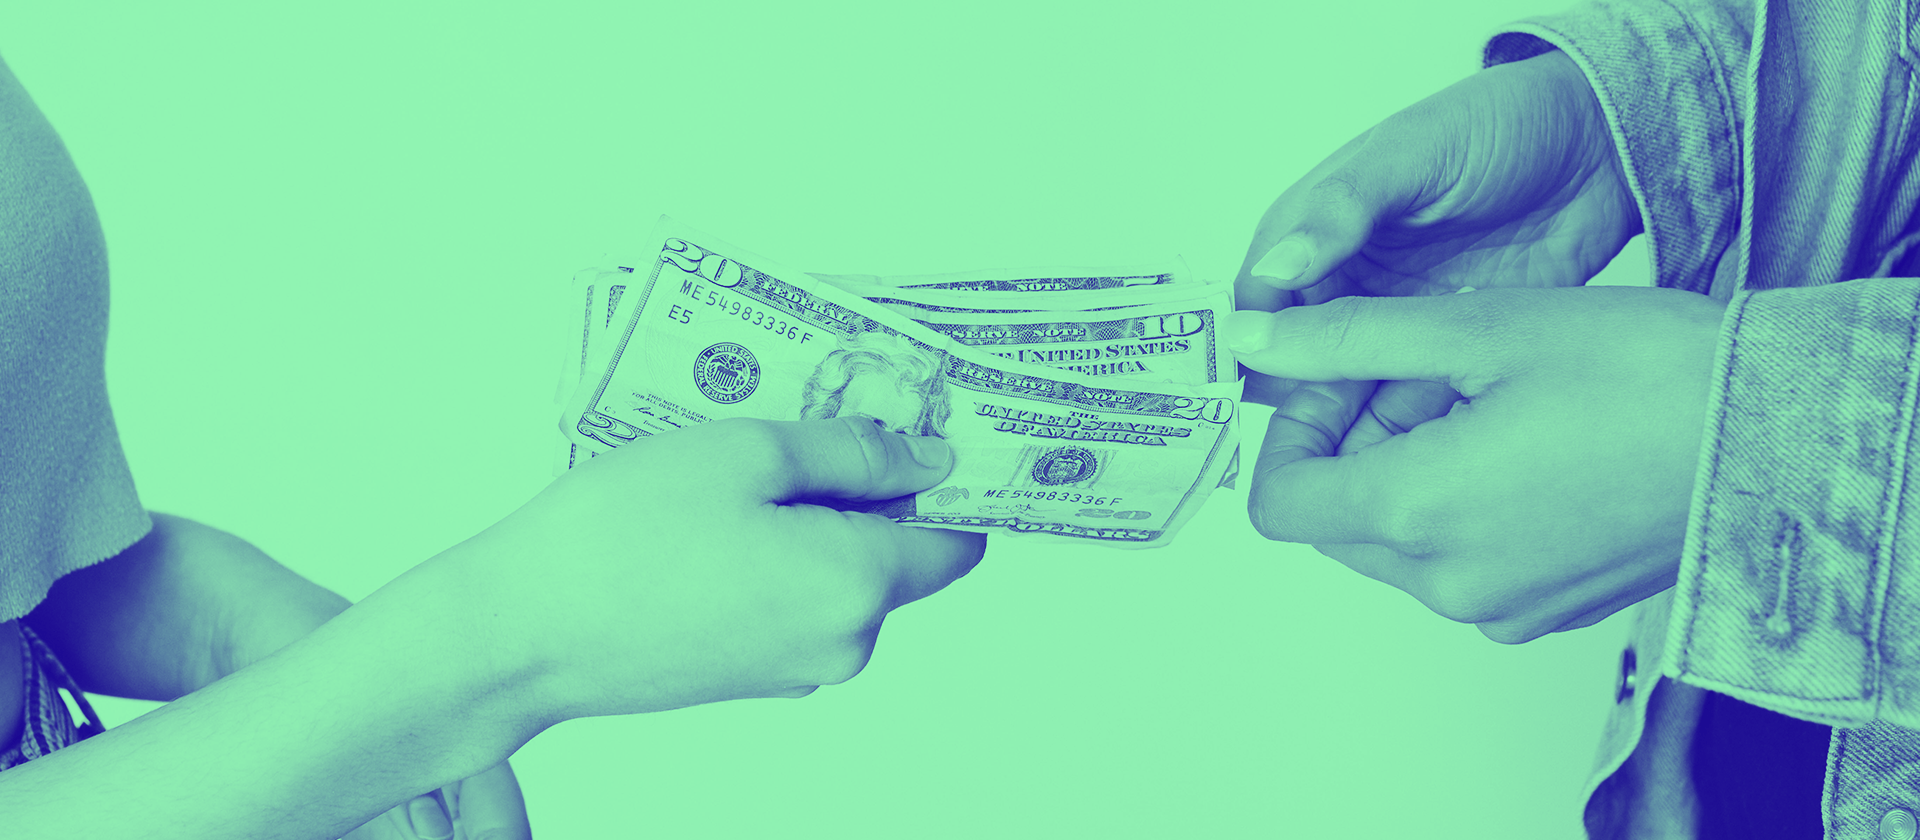 Need Cash? These Are The 4 Best Funding Options For Small Businesses